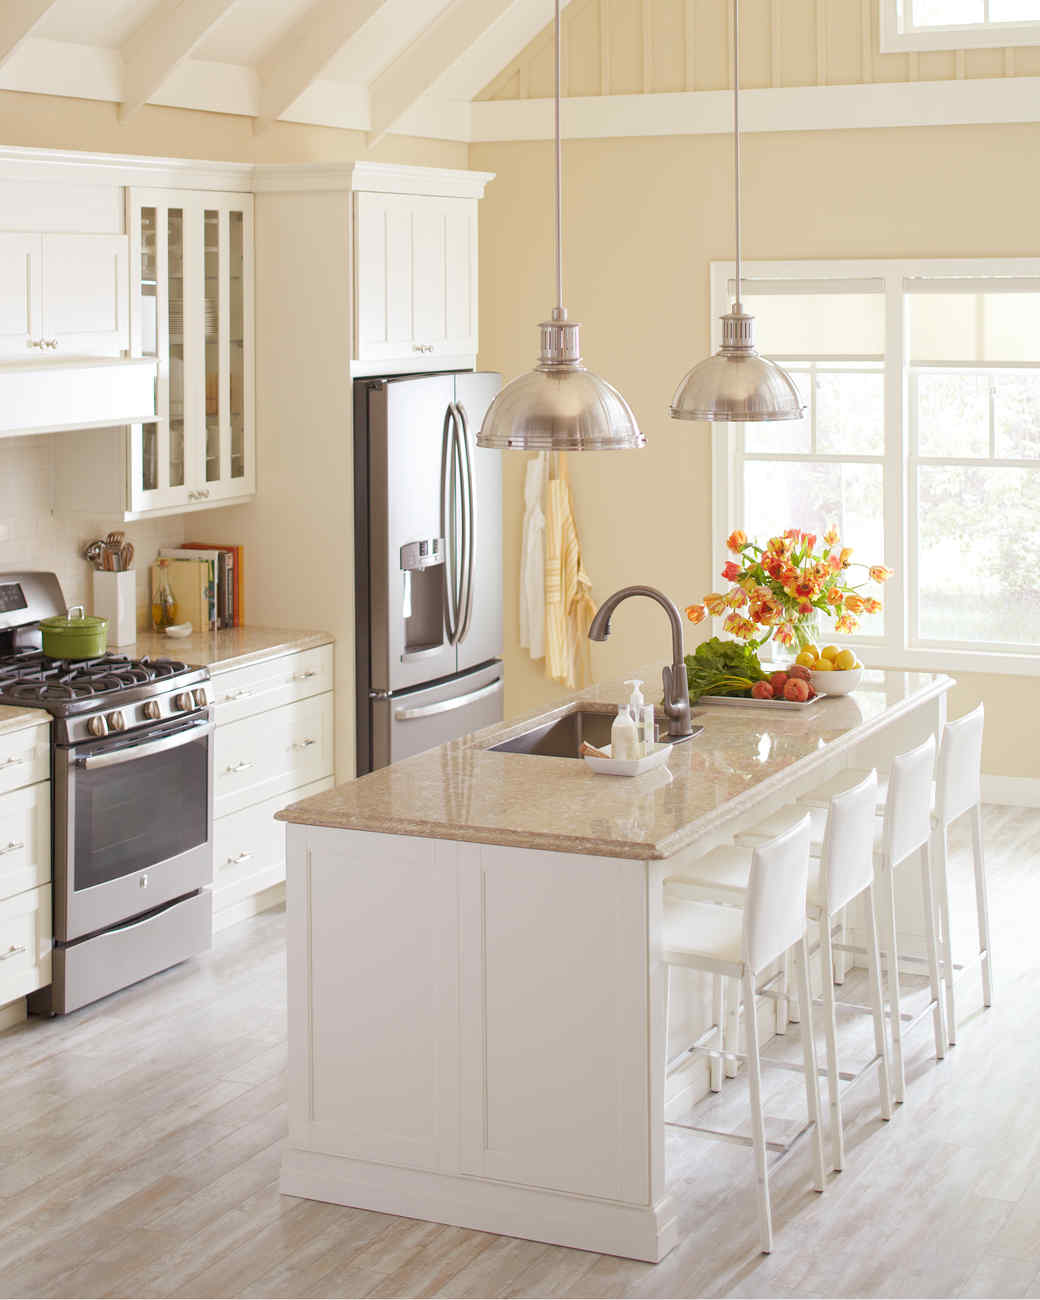 Kitchen Countertops Quartz Colors: Home Depot: Quartz And Corian Countertops